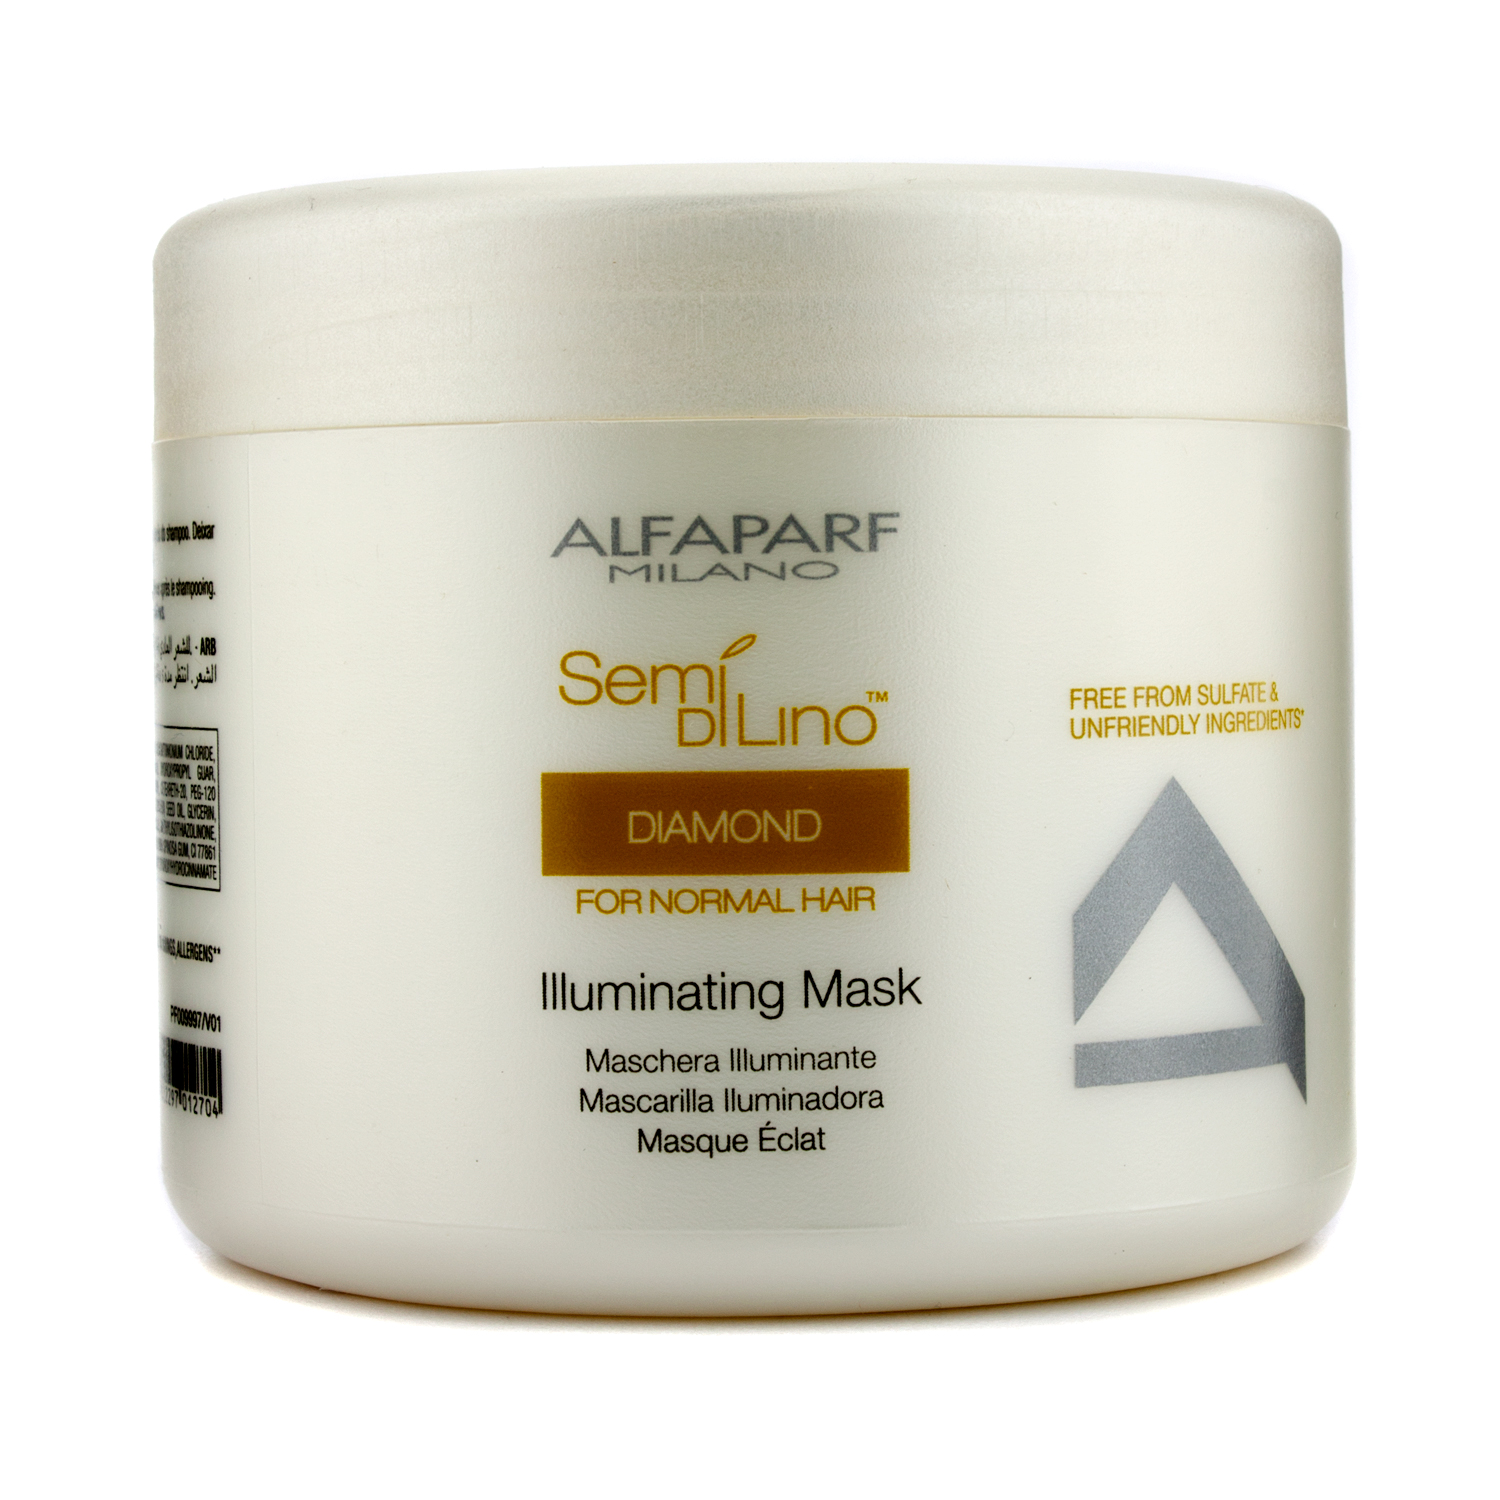 AlfaParf - Semi Di Lino Diamond Illuminating Mask (For Normal Hair) - 500ml/16.9oz